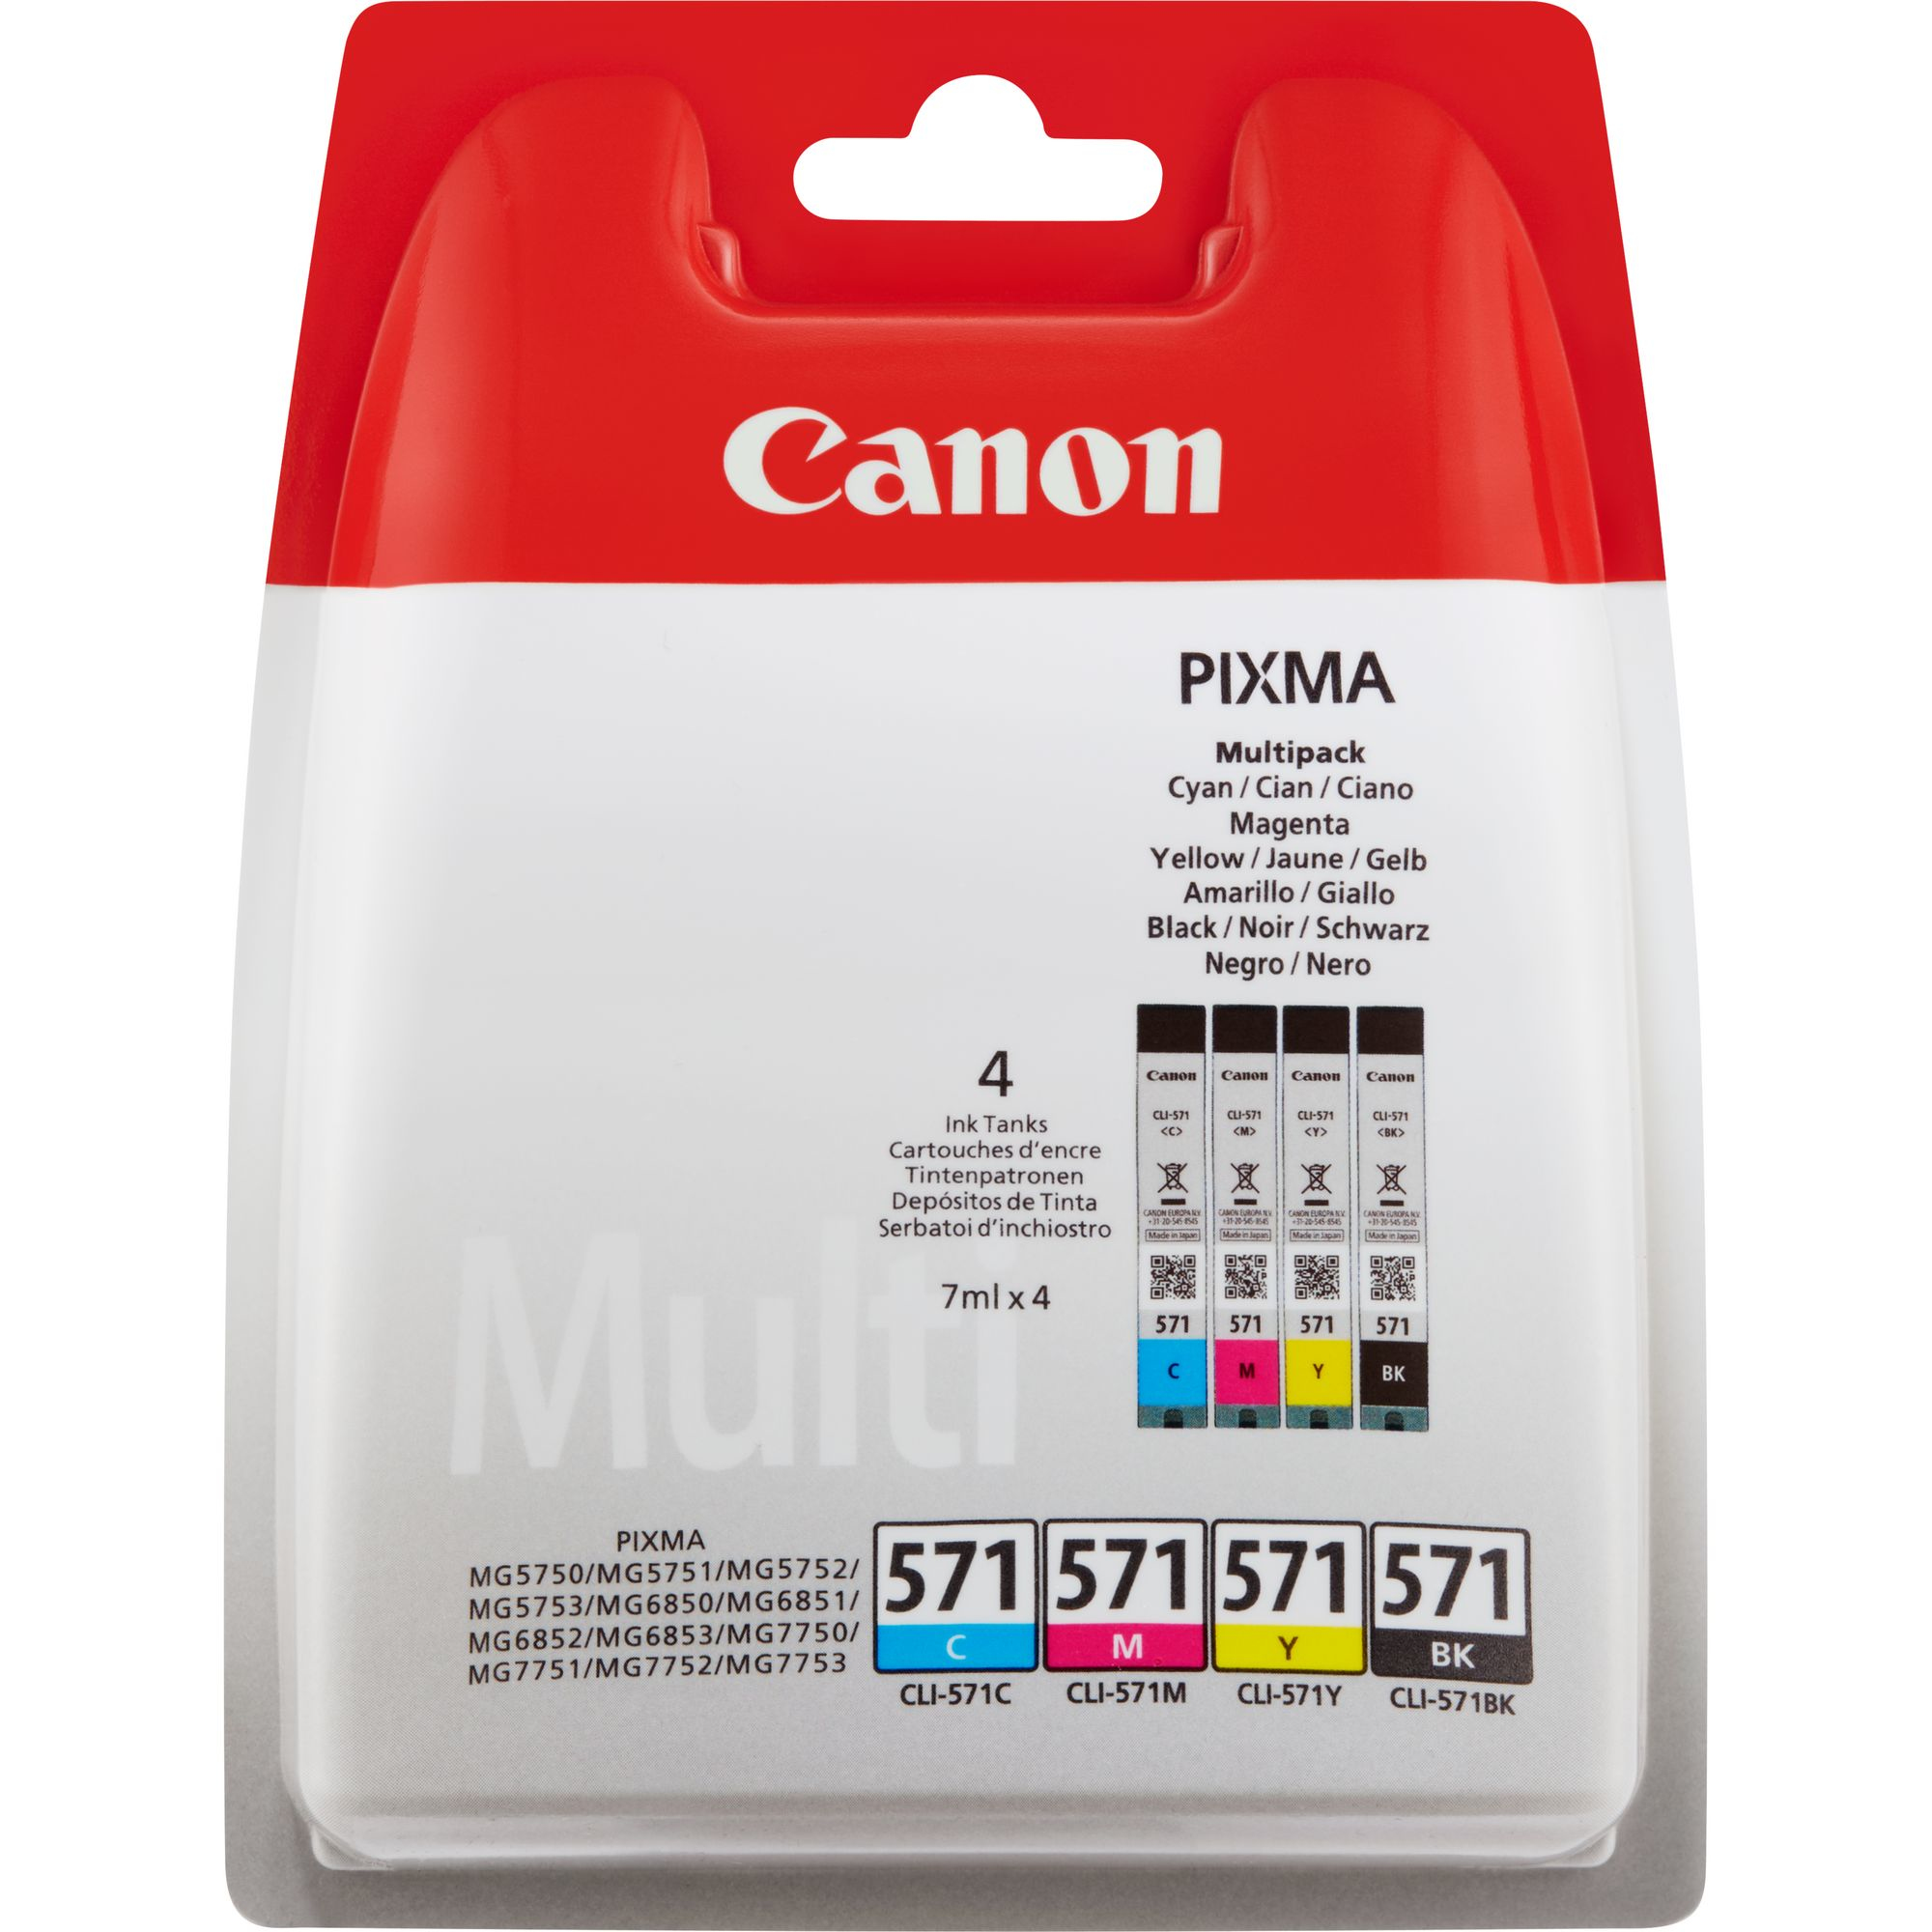 Canon CLI-571 C/M/Y/BK Value Pack - 4-pack - Black, Yellow, Cyan, Magenta - Original - Ink Tank - For PIXMA MG5751, MG5752, MG5753, MG6851, MG6852, MG6853, MG7750, MG7751, MG7752, MG7753 0386 - C2000